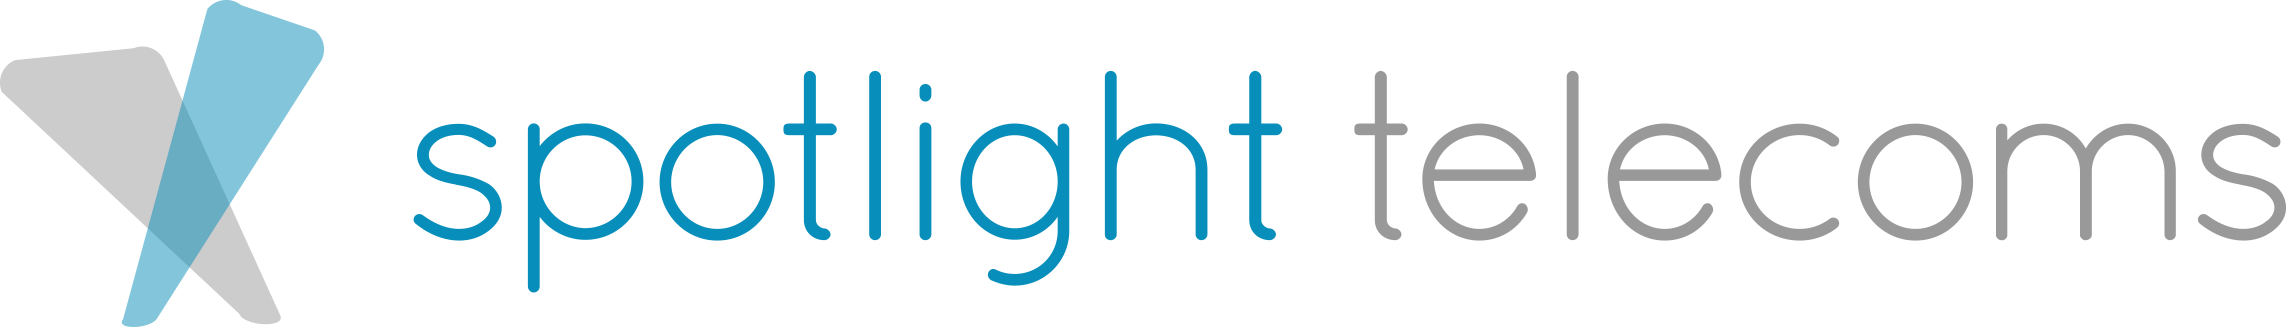 Spotlight Telecoms - The exclusive mobile phone provider